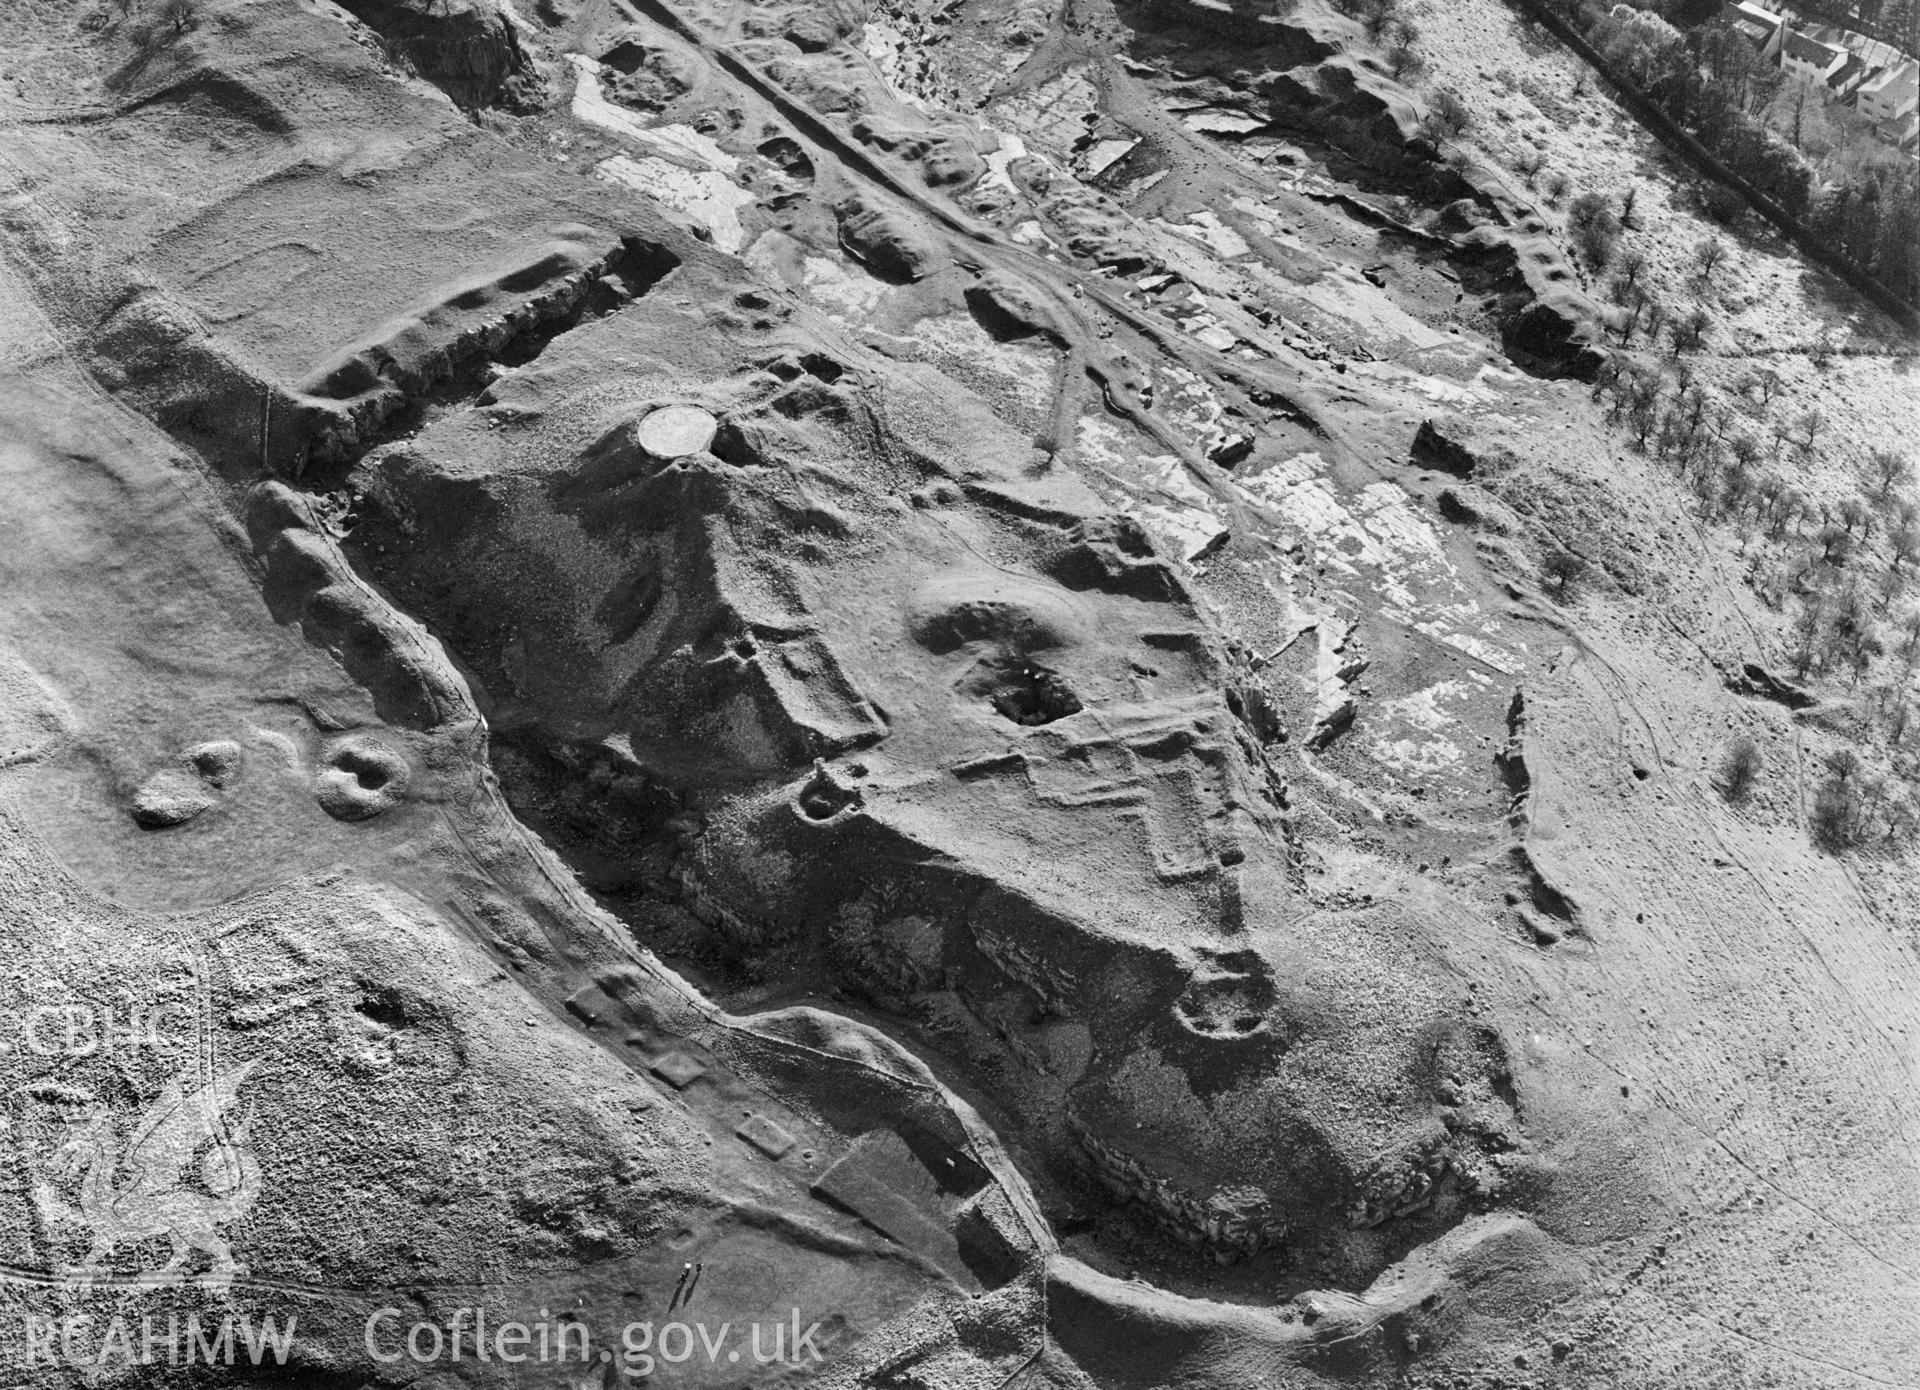 RCAHMW Black and white oblique aerial photograph of Morlais Castle, Merthyr Tydfil, taken on 31/01/1992 by CR Musson